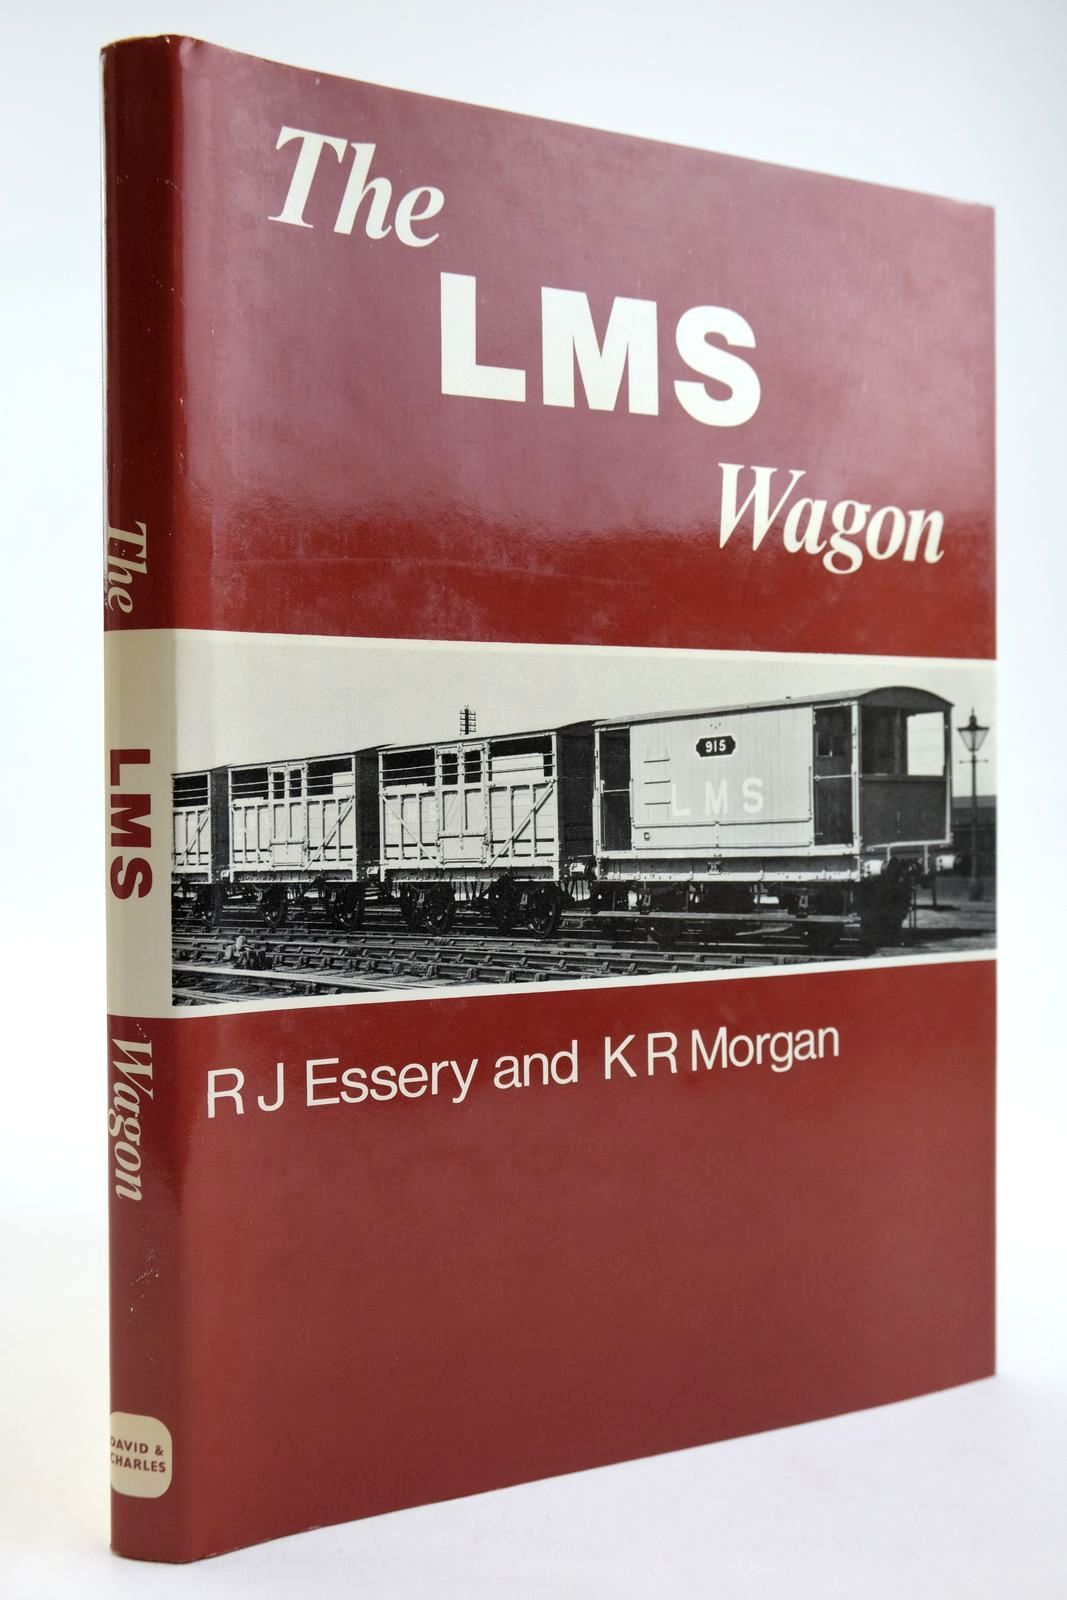 Photo of THE LMS WAGON written by Essery, R.J. Morgan, K.R. published by David & Charles (STOCK CODE: 2133806)  for sale by Stella & Rose's Books